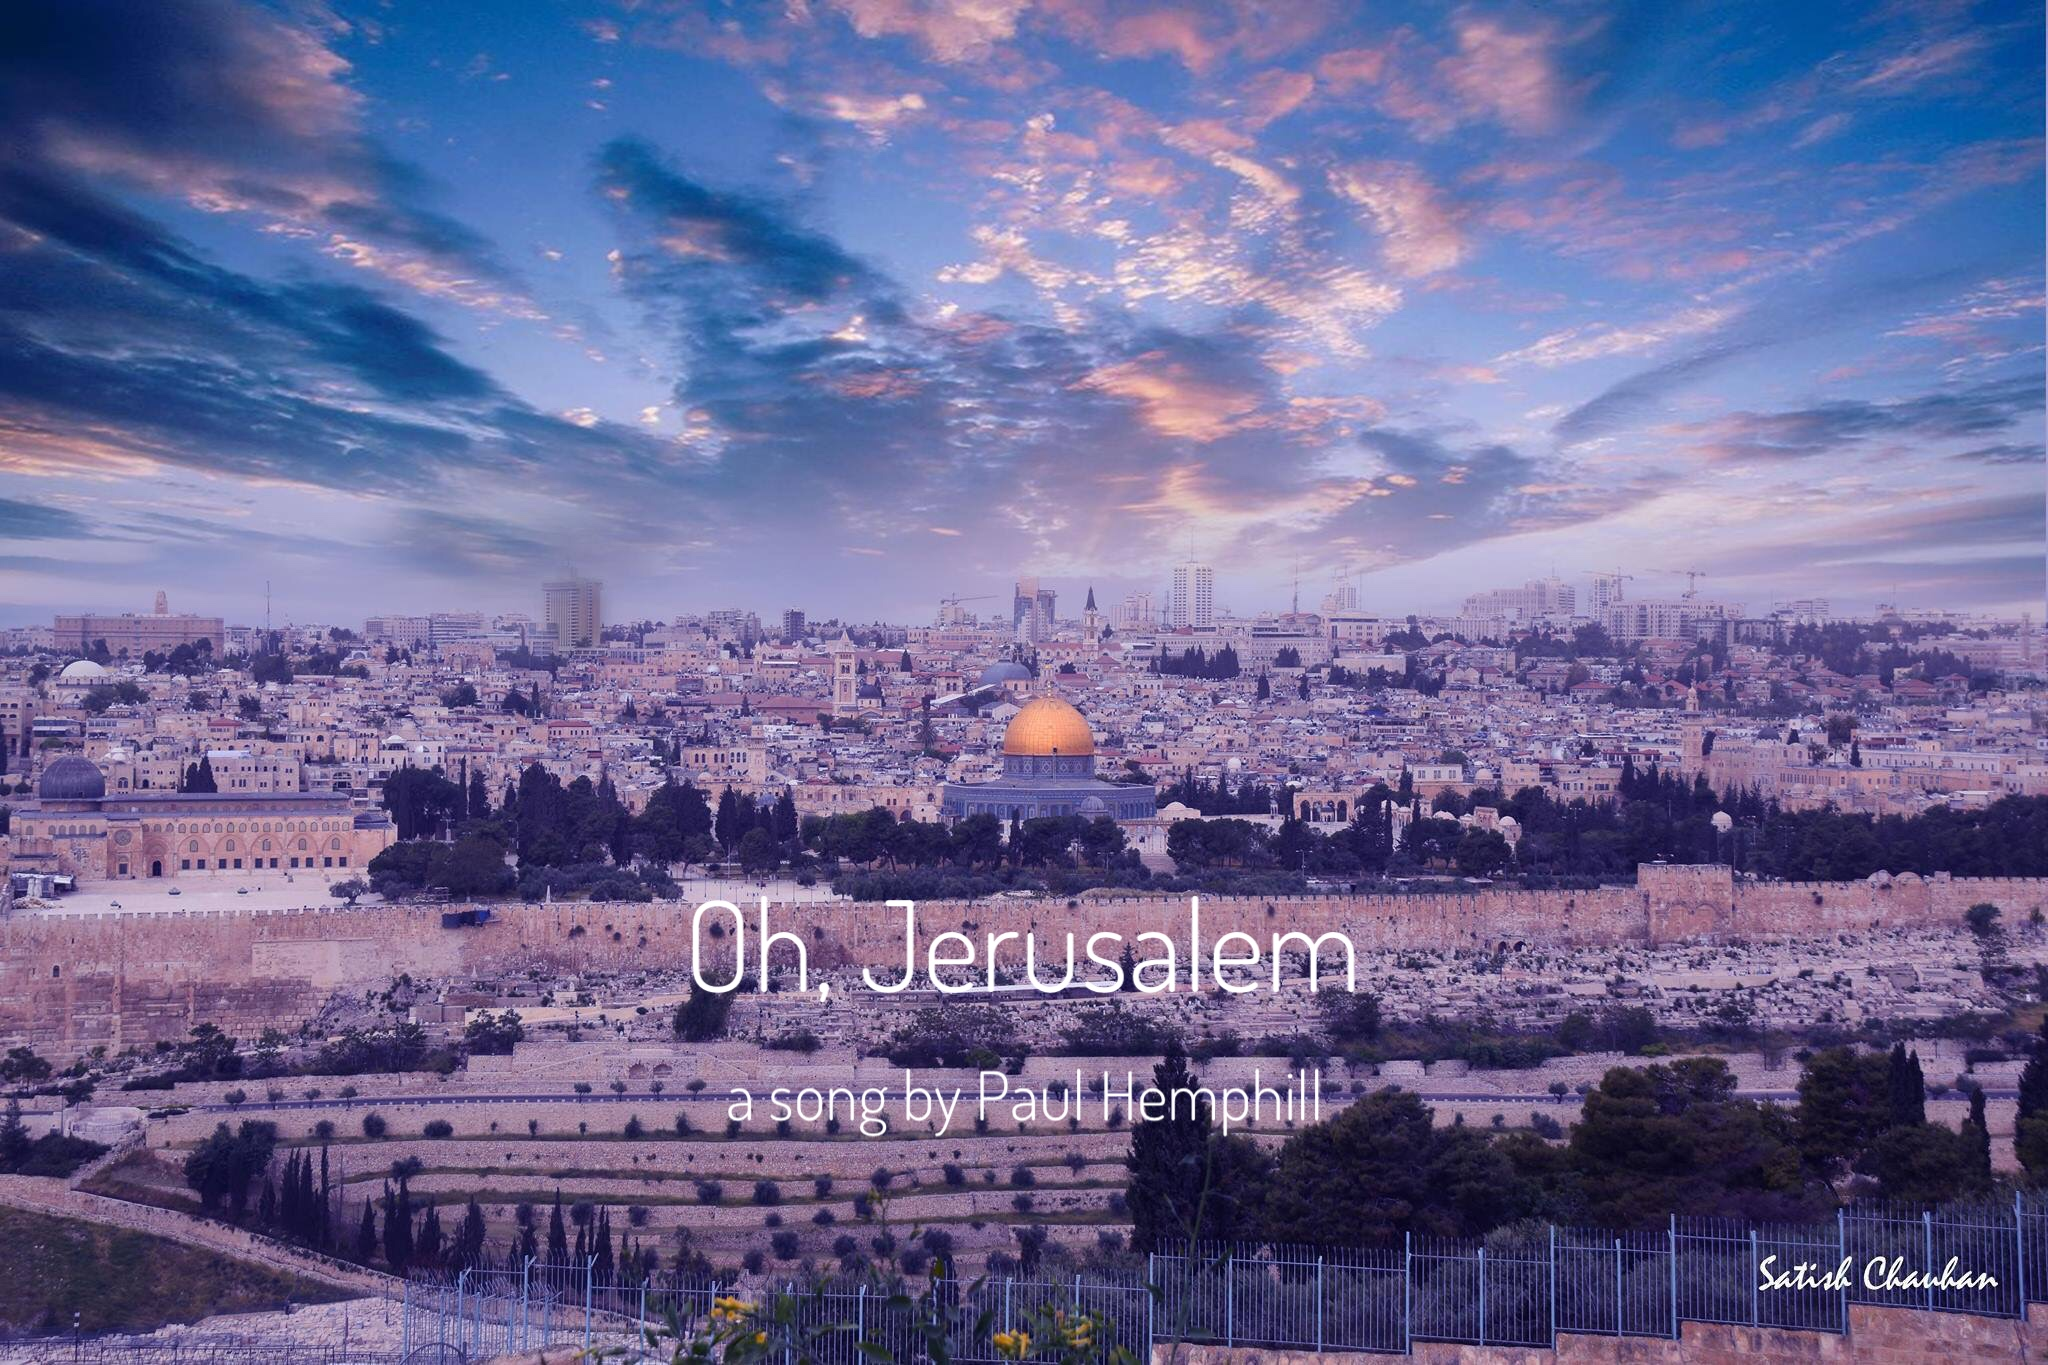 Oh, Jerusalem – a song